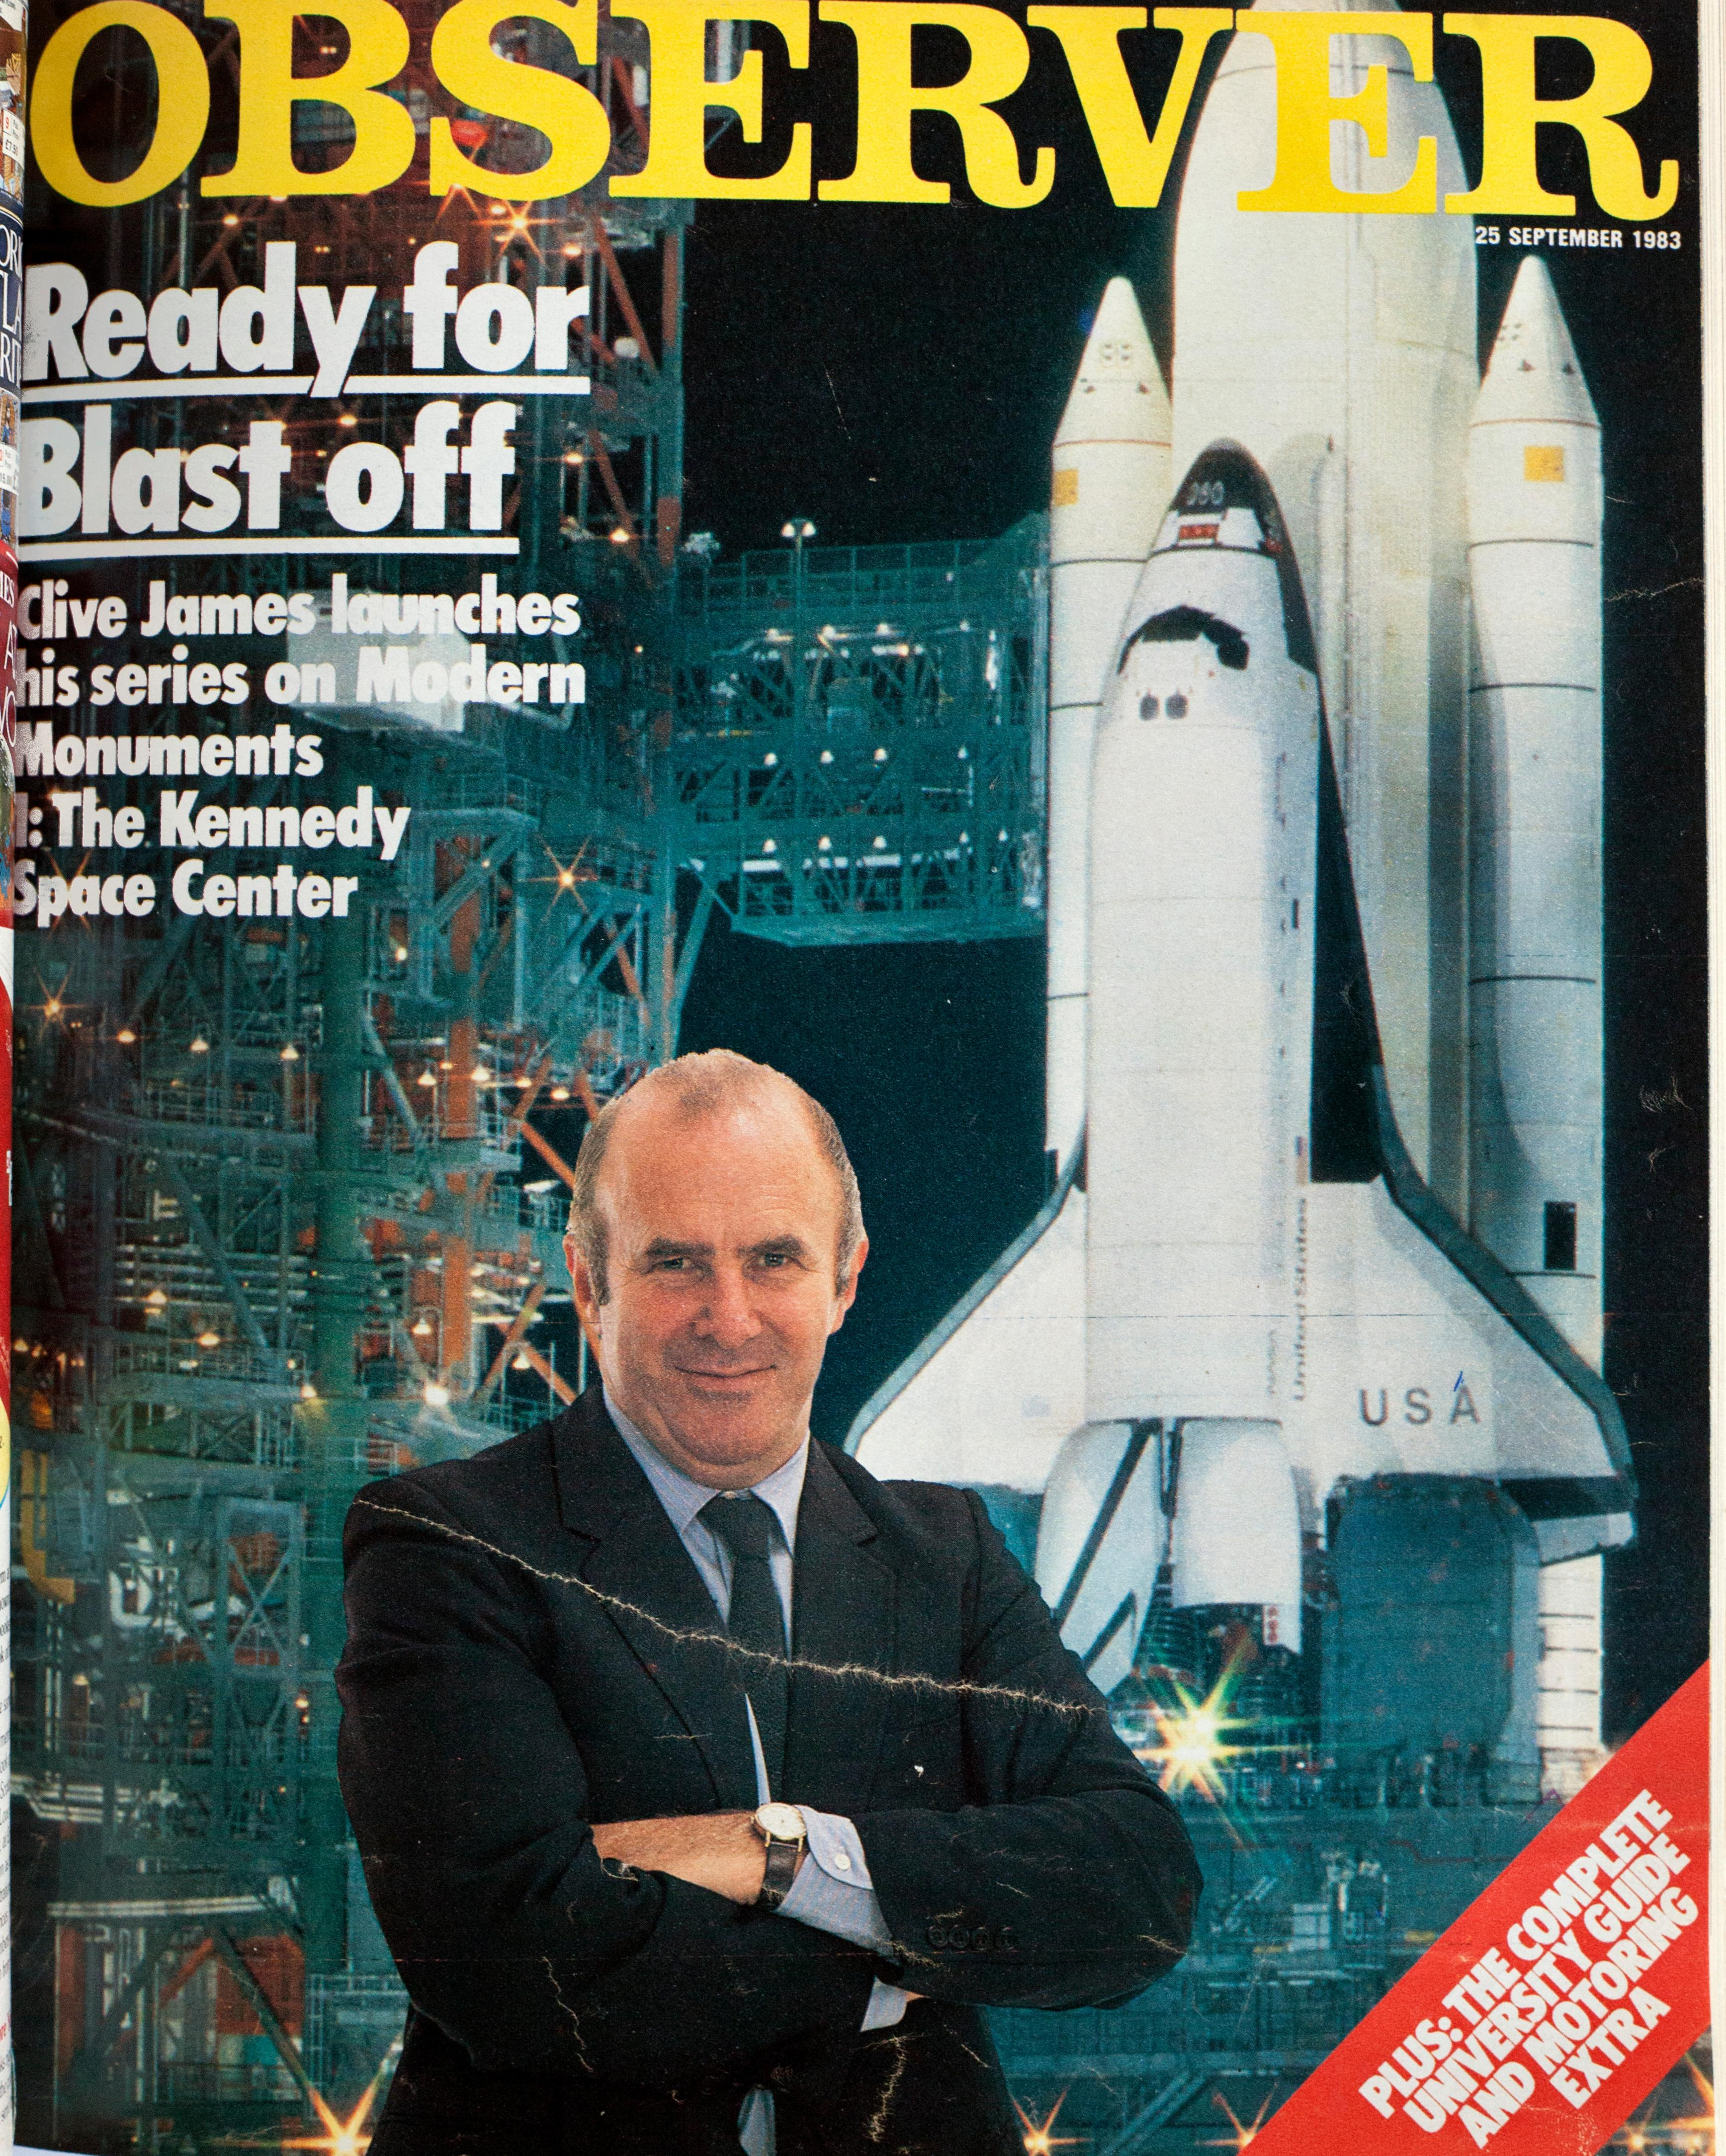 From the archive: Clive James at the Space Center, 1983